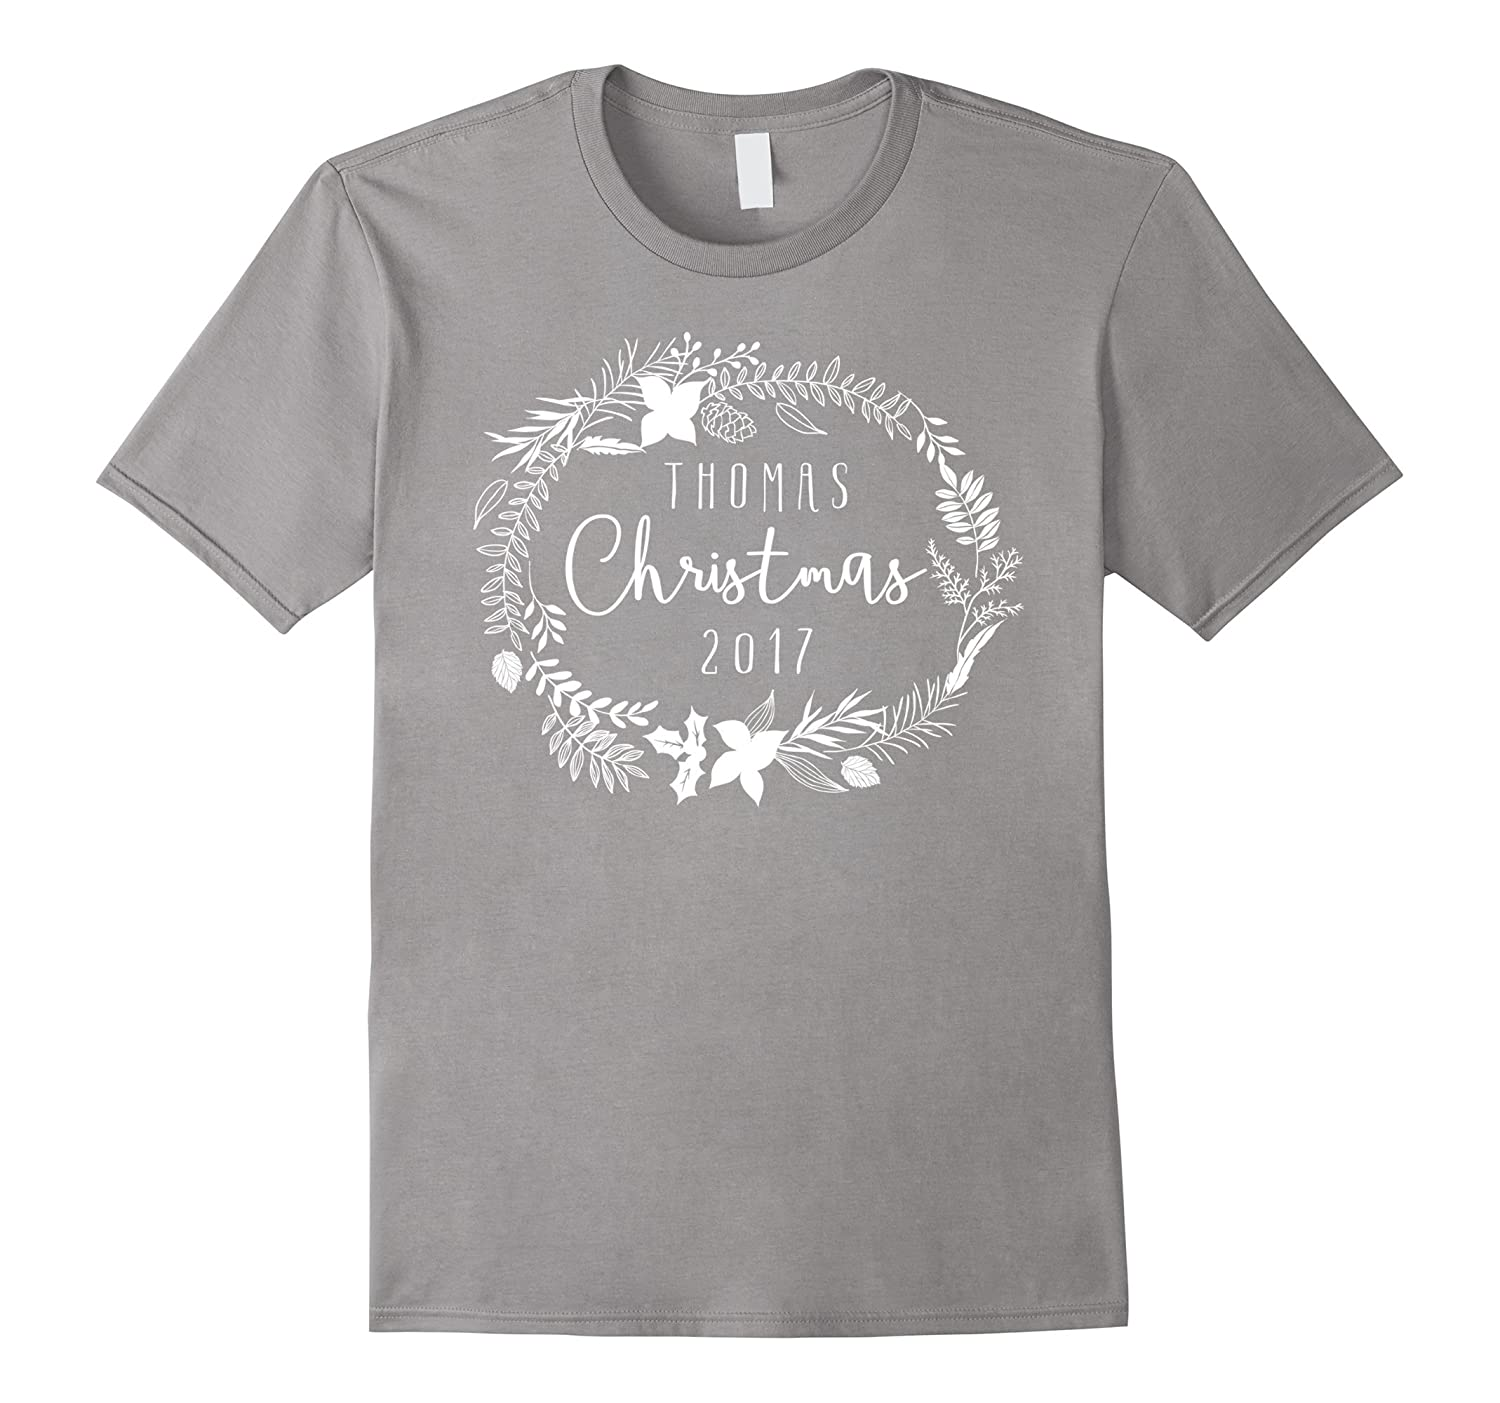 Family Christmas Shirts.Personalized Family Christmas Shirts Thomas Christmas 2017 Anz